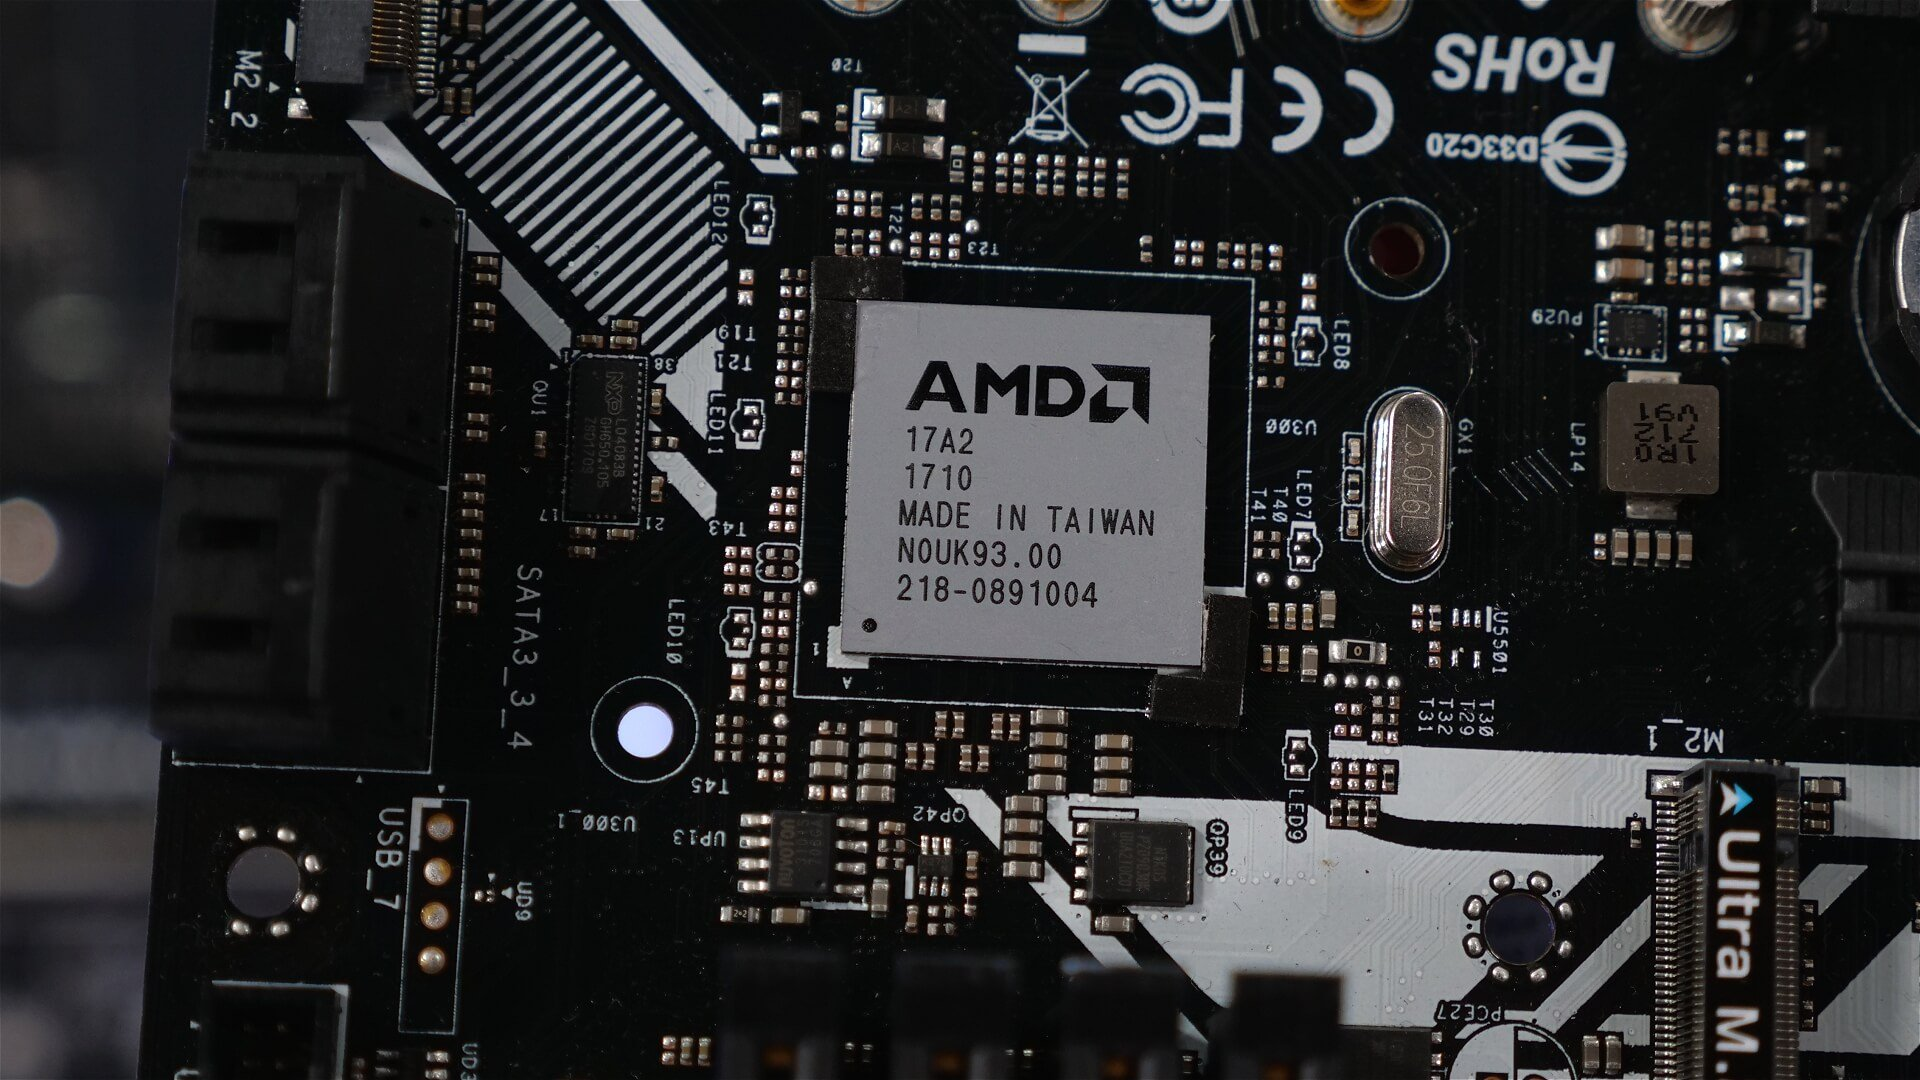 Dont Bother with A320 Motherboards Go for AMDs B350 Instead for 1920x1080